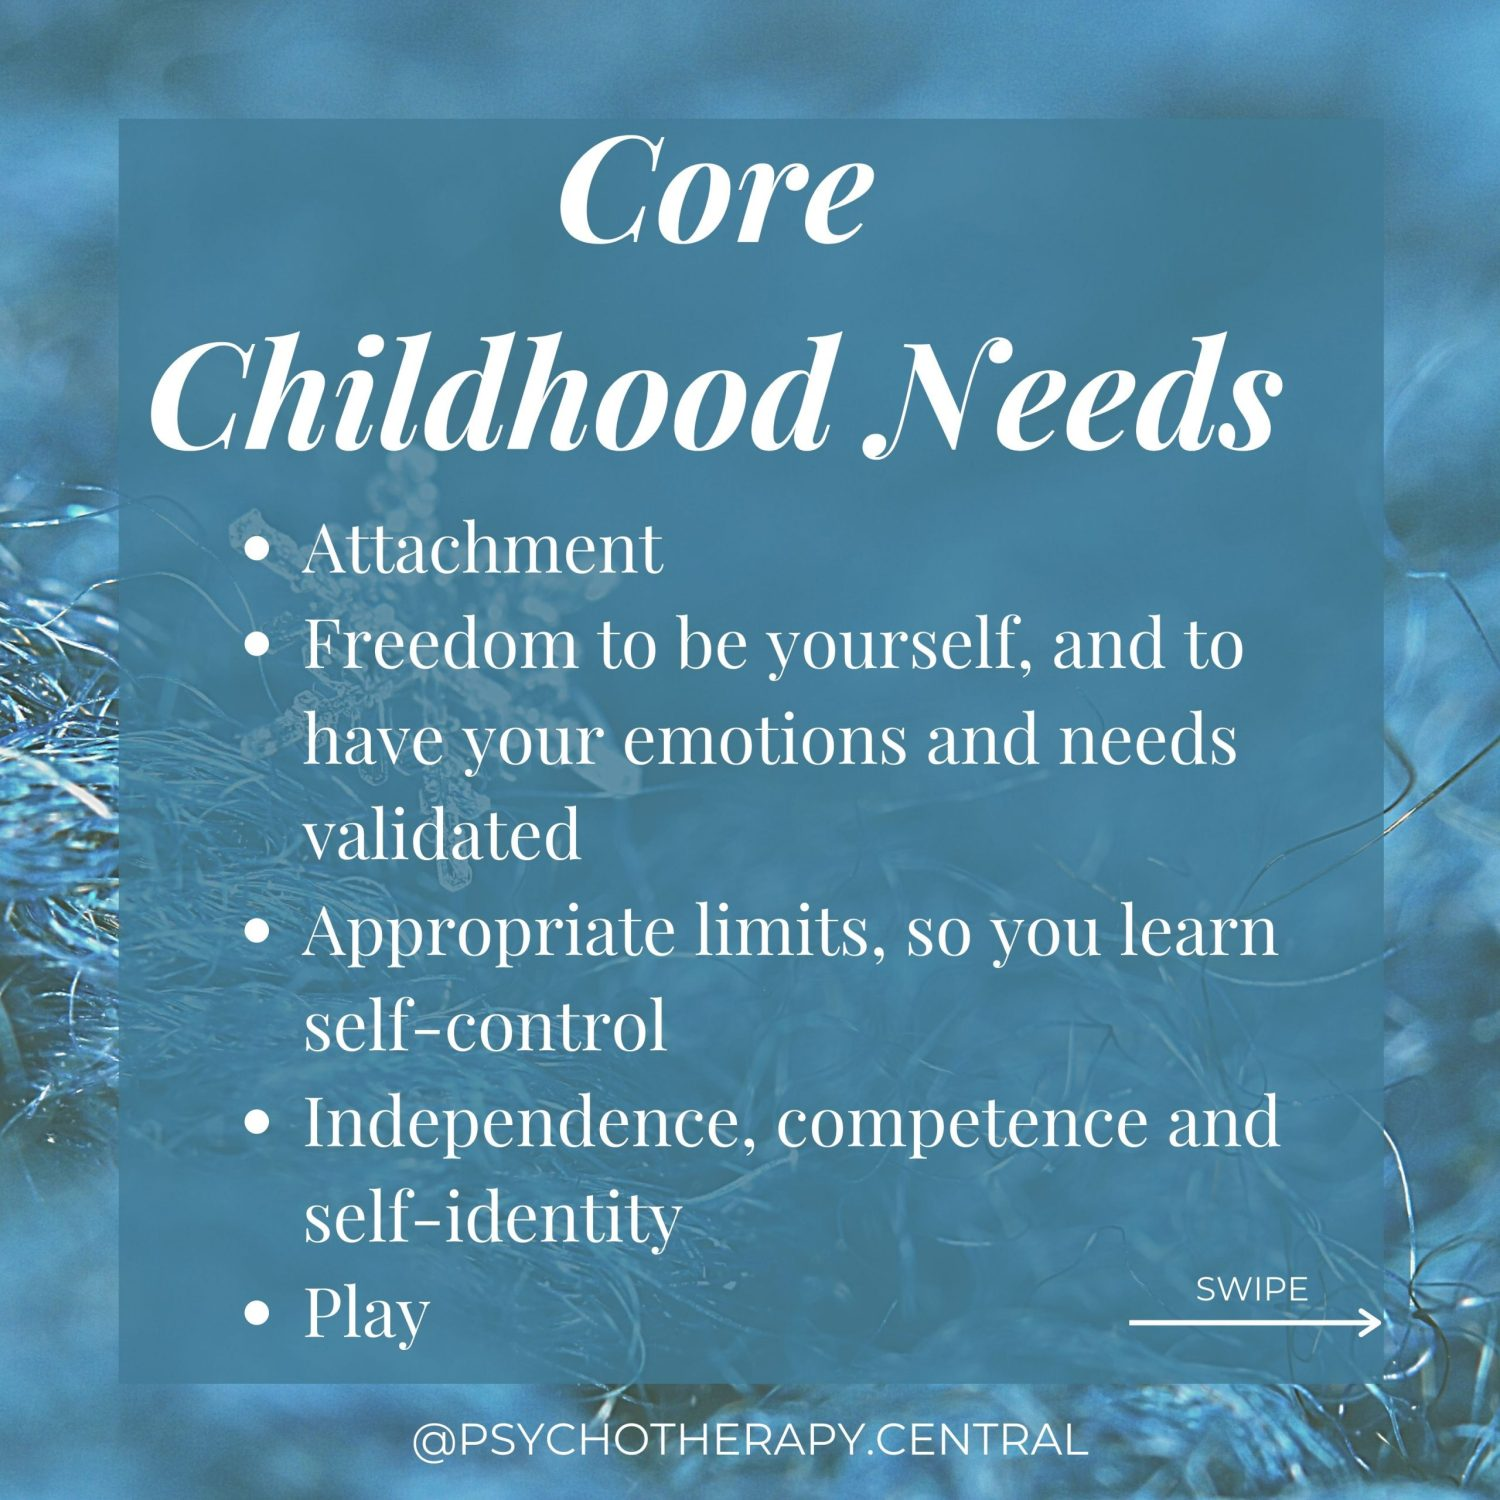 What are Core Childhood Needs